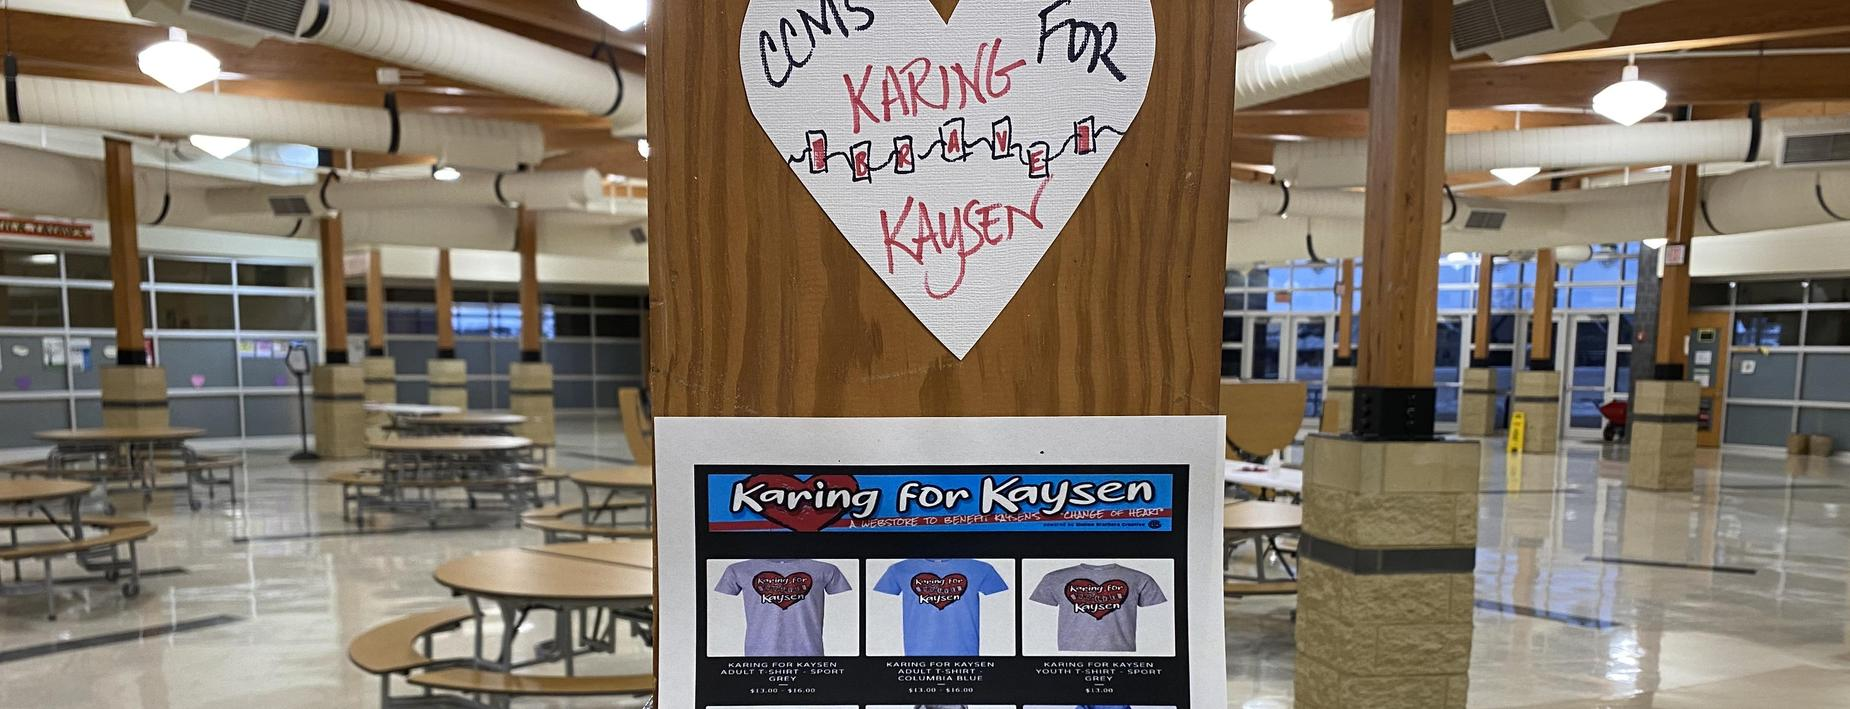 Caring for Kaysen